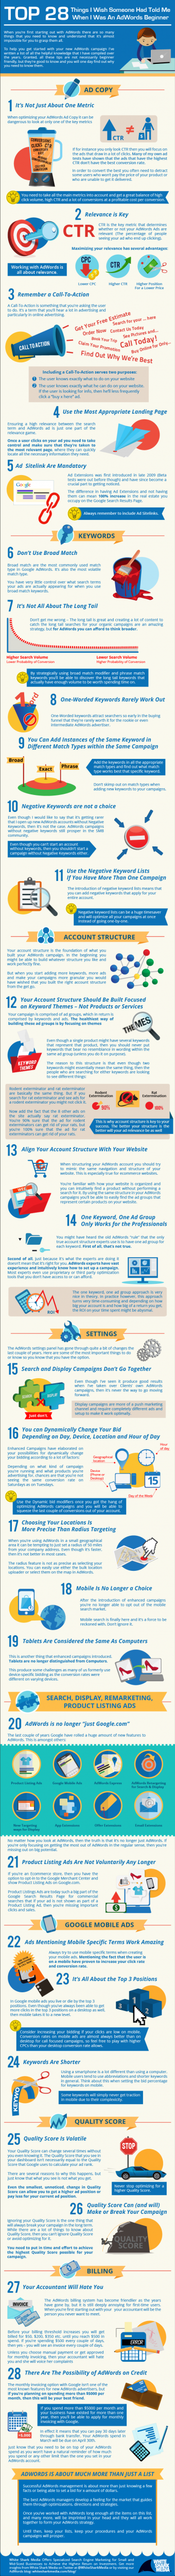 Top-28-Things-I-wish-someone-had-told-me-when-I-was-an-AdWords-beginner-Infographic-White-Shark-Media